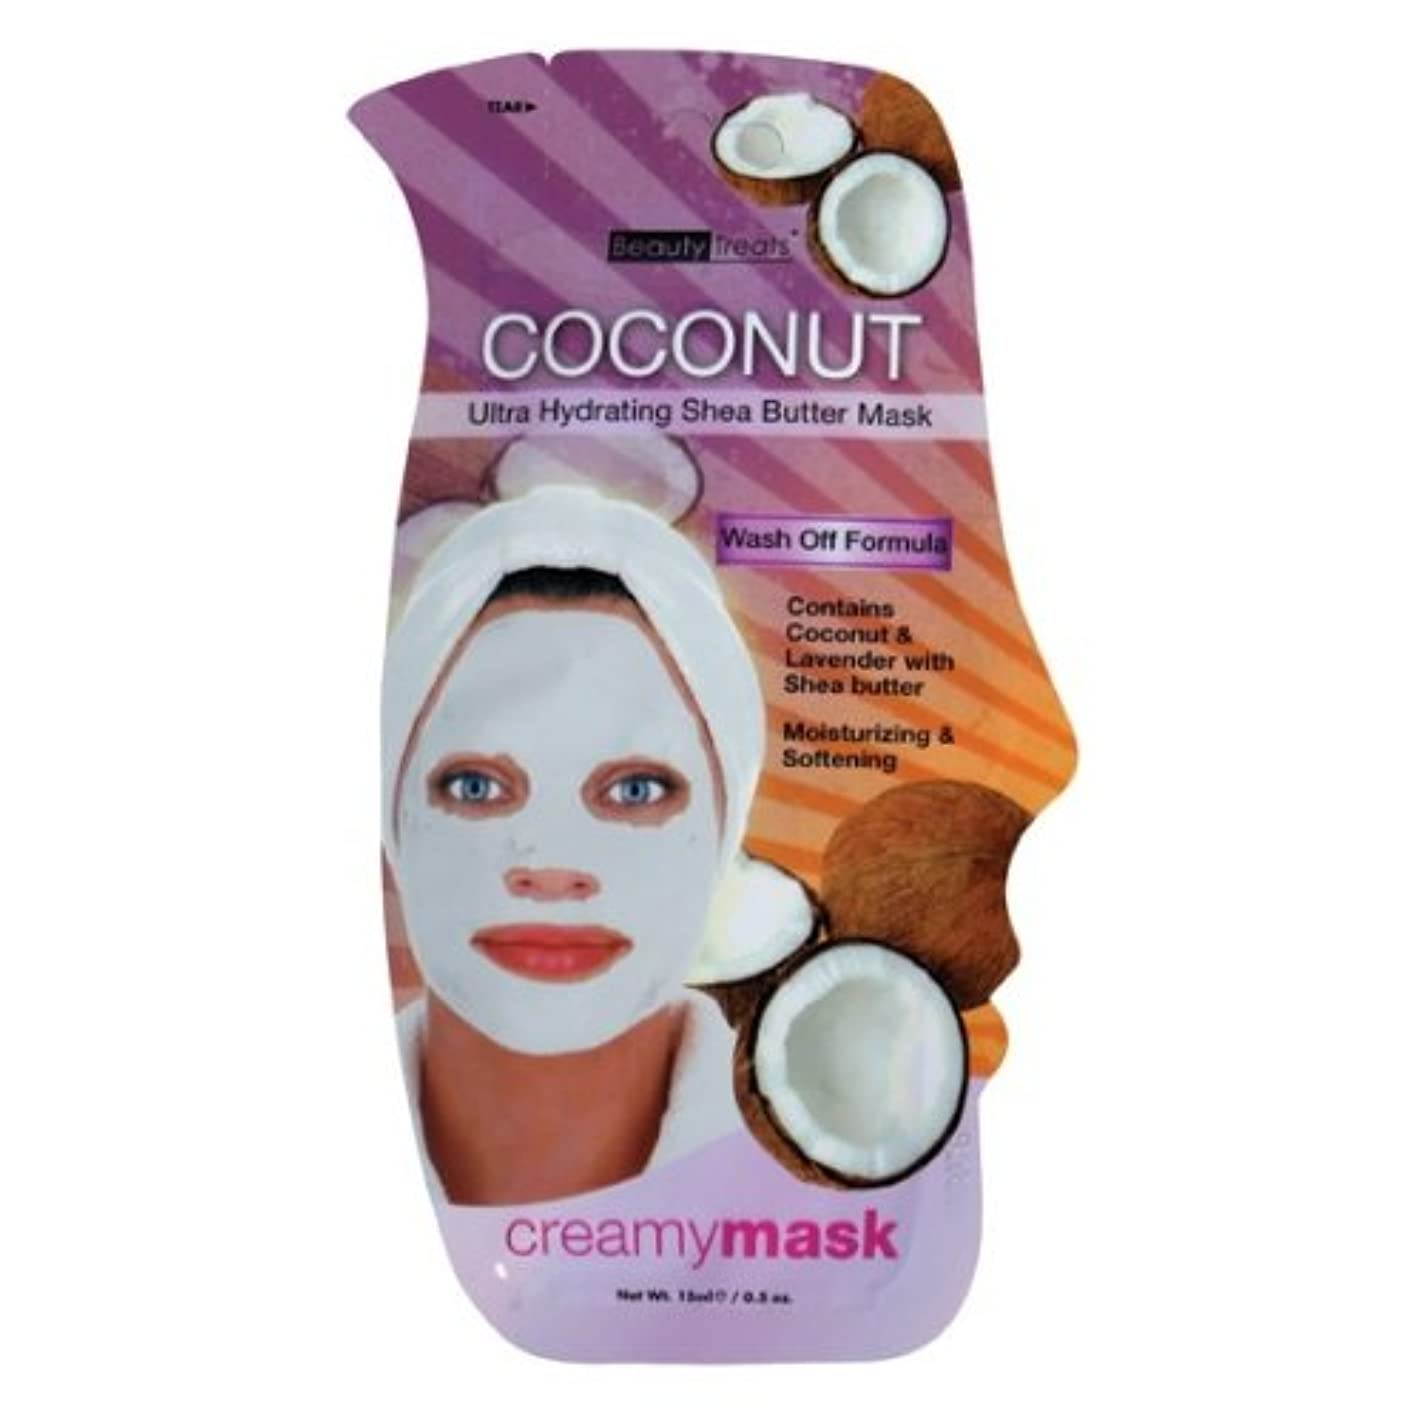 温度コストリズミカルな(3 Pack) BEAUTY TREATS Coconut Ultra Hydrating Shea Butter Mask - Coconut (並行輸入品)